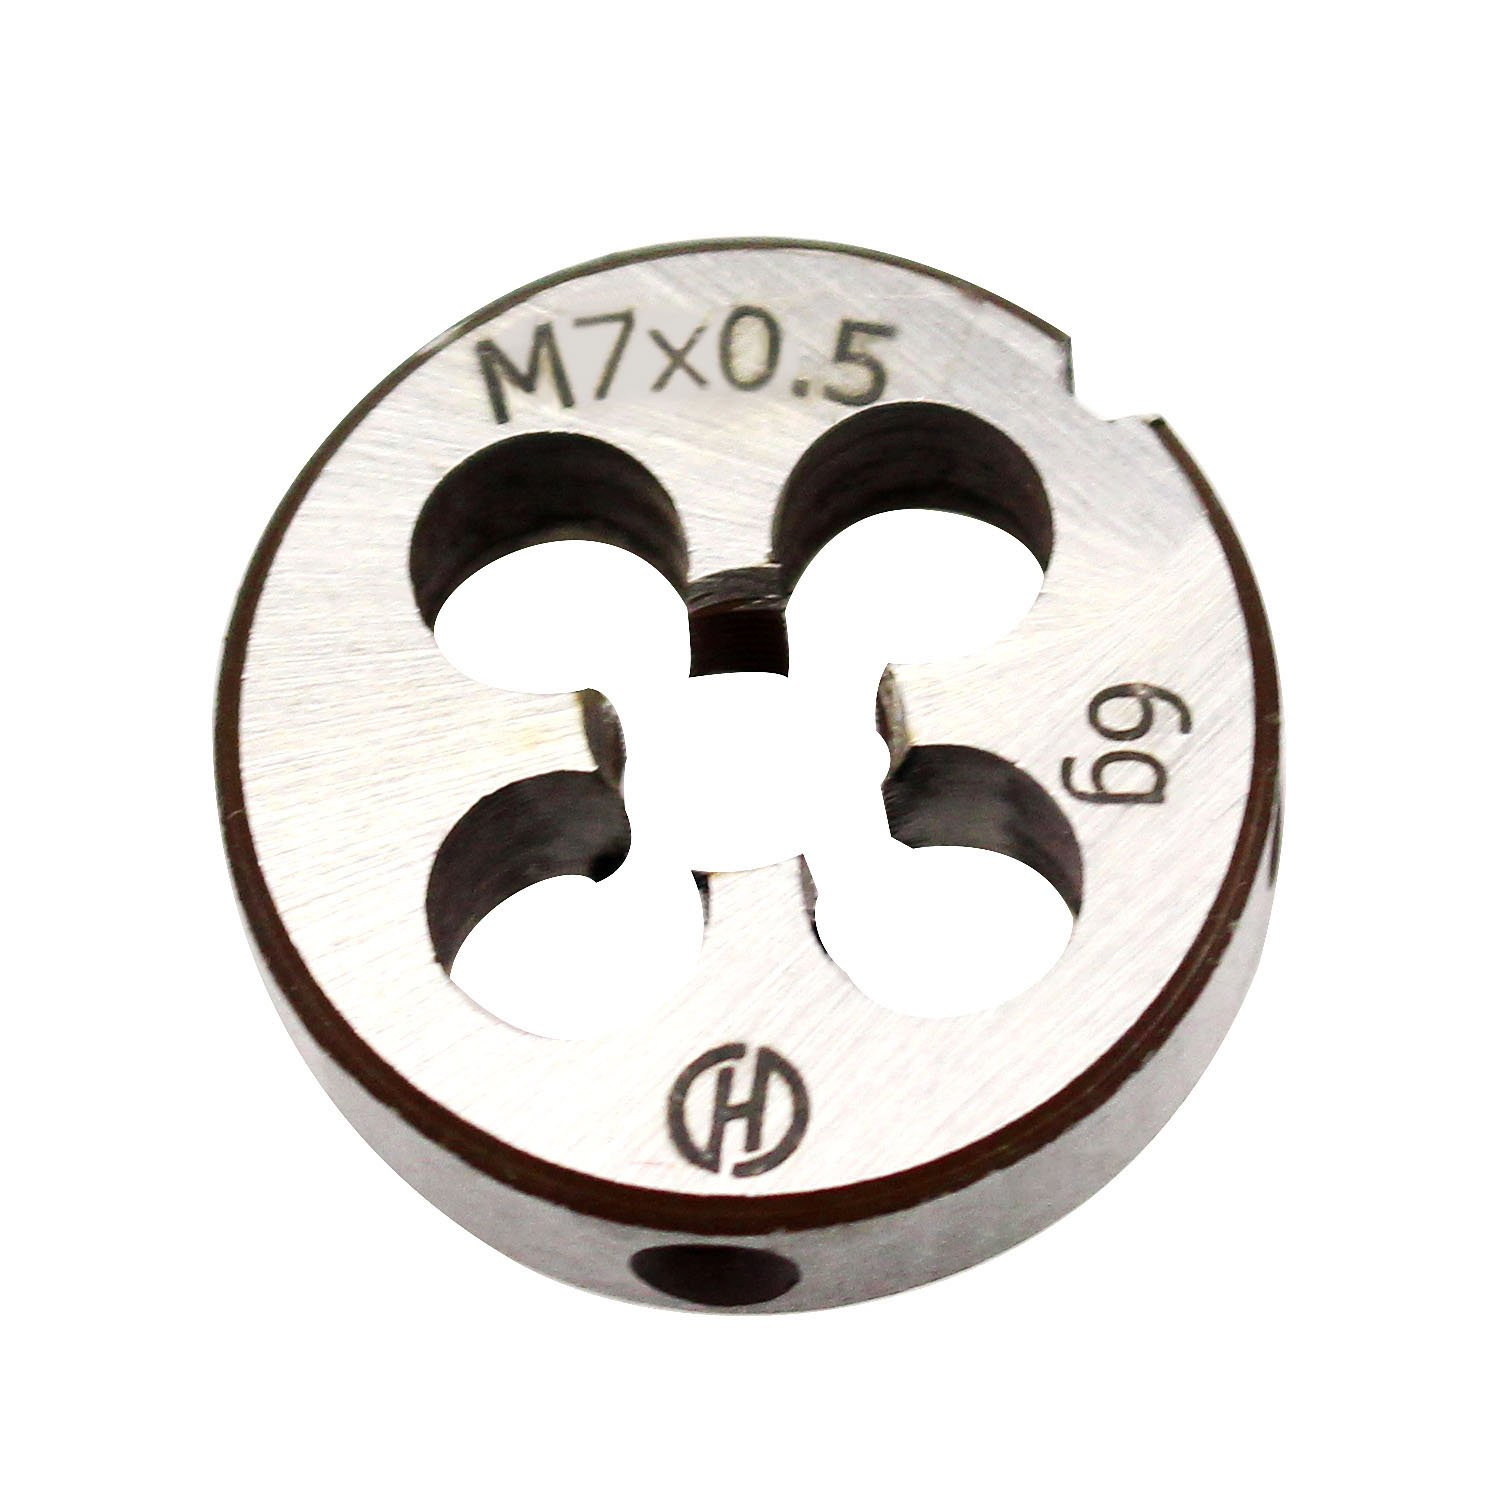 8mm x .5 Metric Right hand Die M8 x 0.5mm Pitch